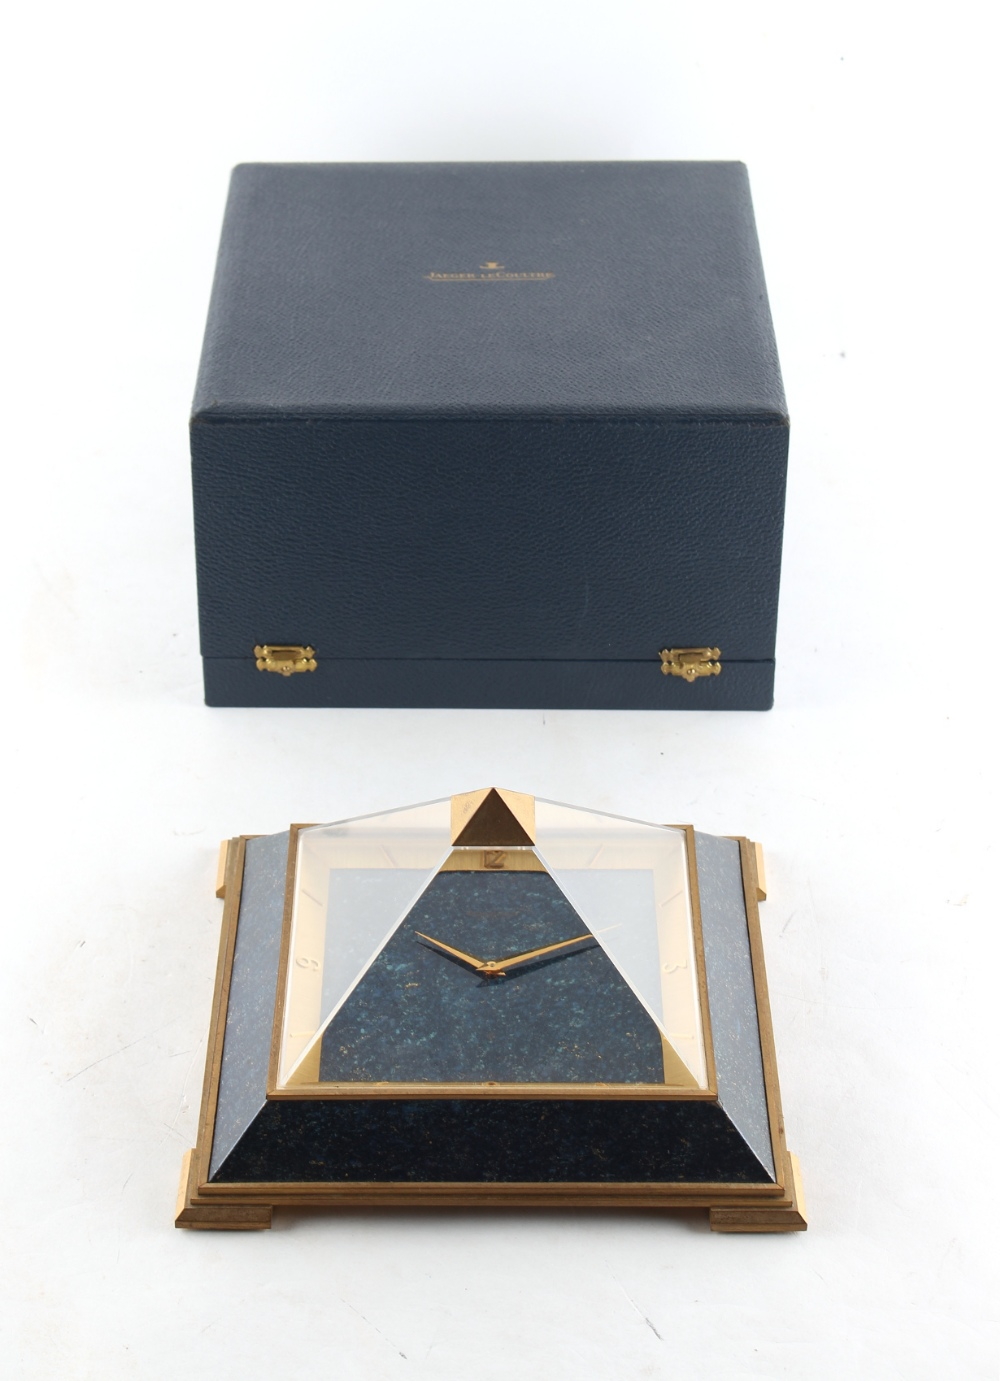 Lot 310 - Property of a lady - a 1960's Jaeger Le Coultre brass & faux lapis lazuli pyramid clock, 7.7ins. (